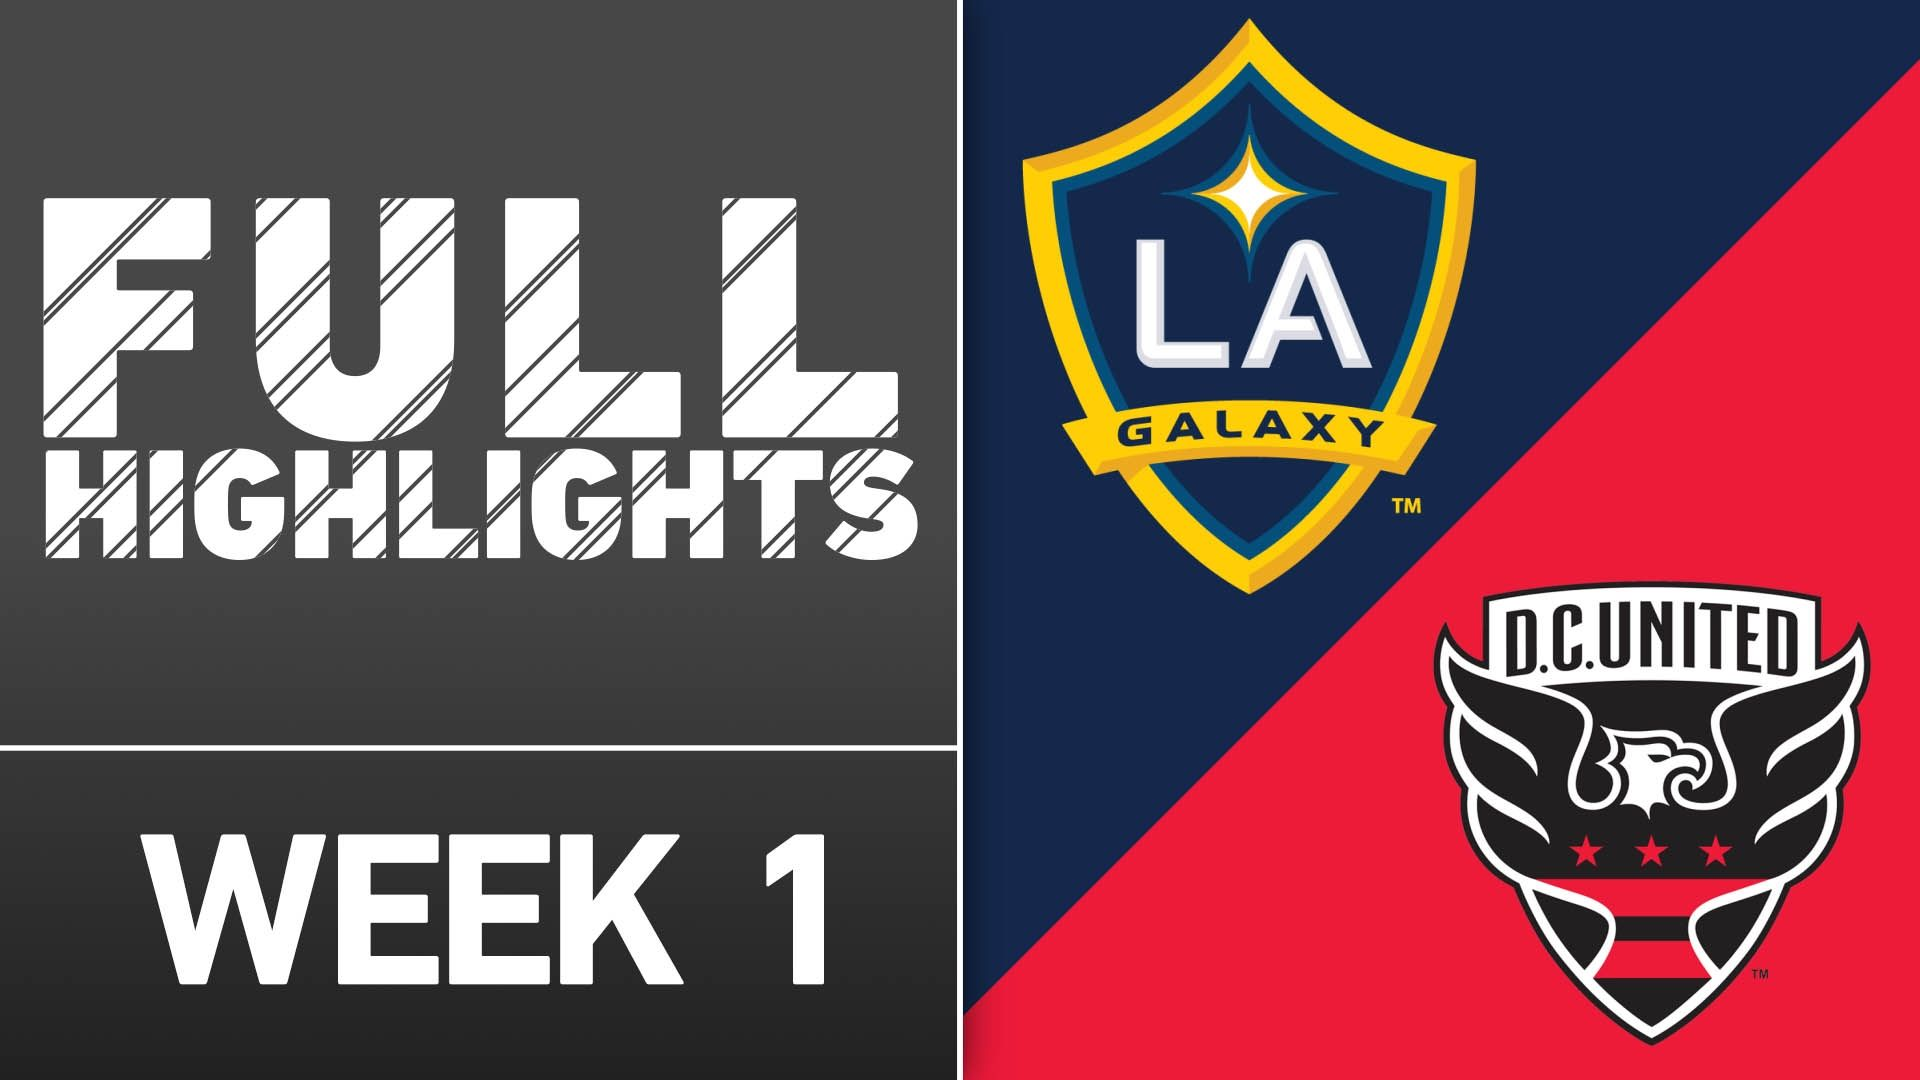 Video via MLS: LA Galaxy vs. DC United | March 6, 2016 - ESPN Video